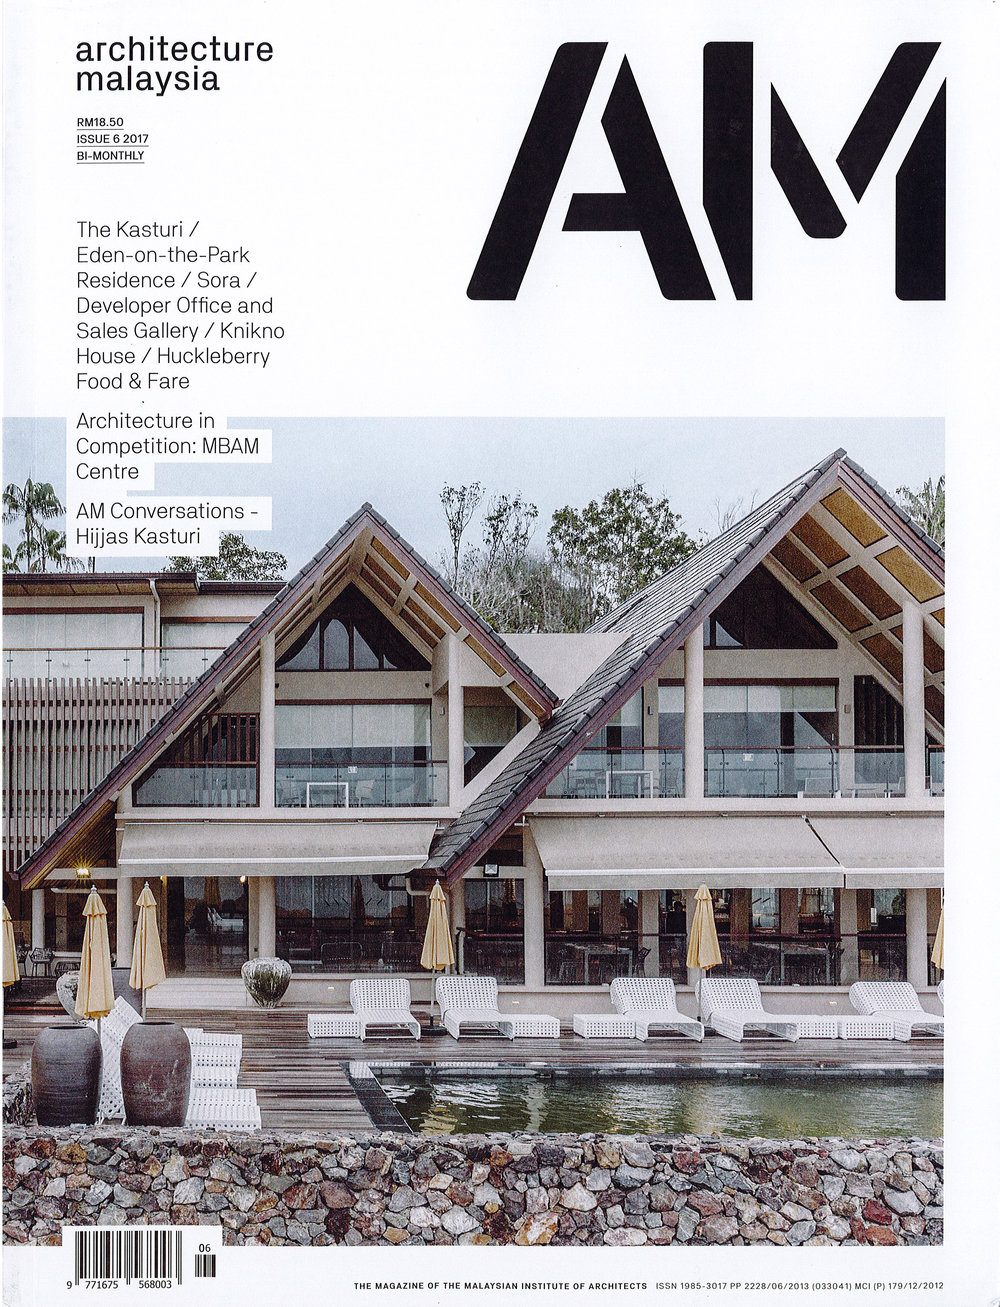 Architecture Malaysia - Issue 6 2017-1.jpg